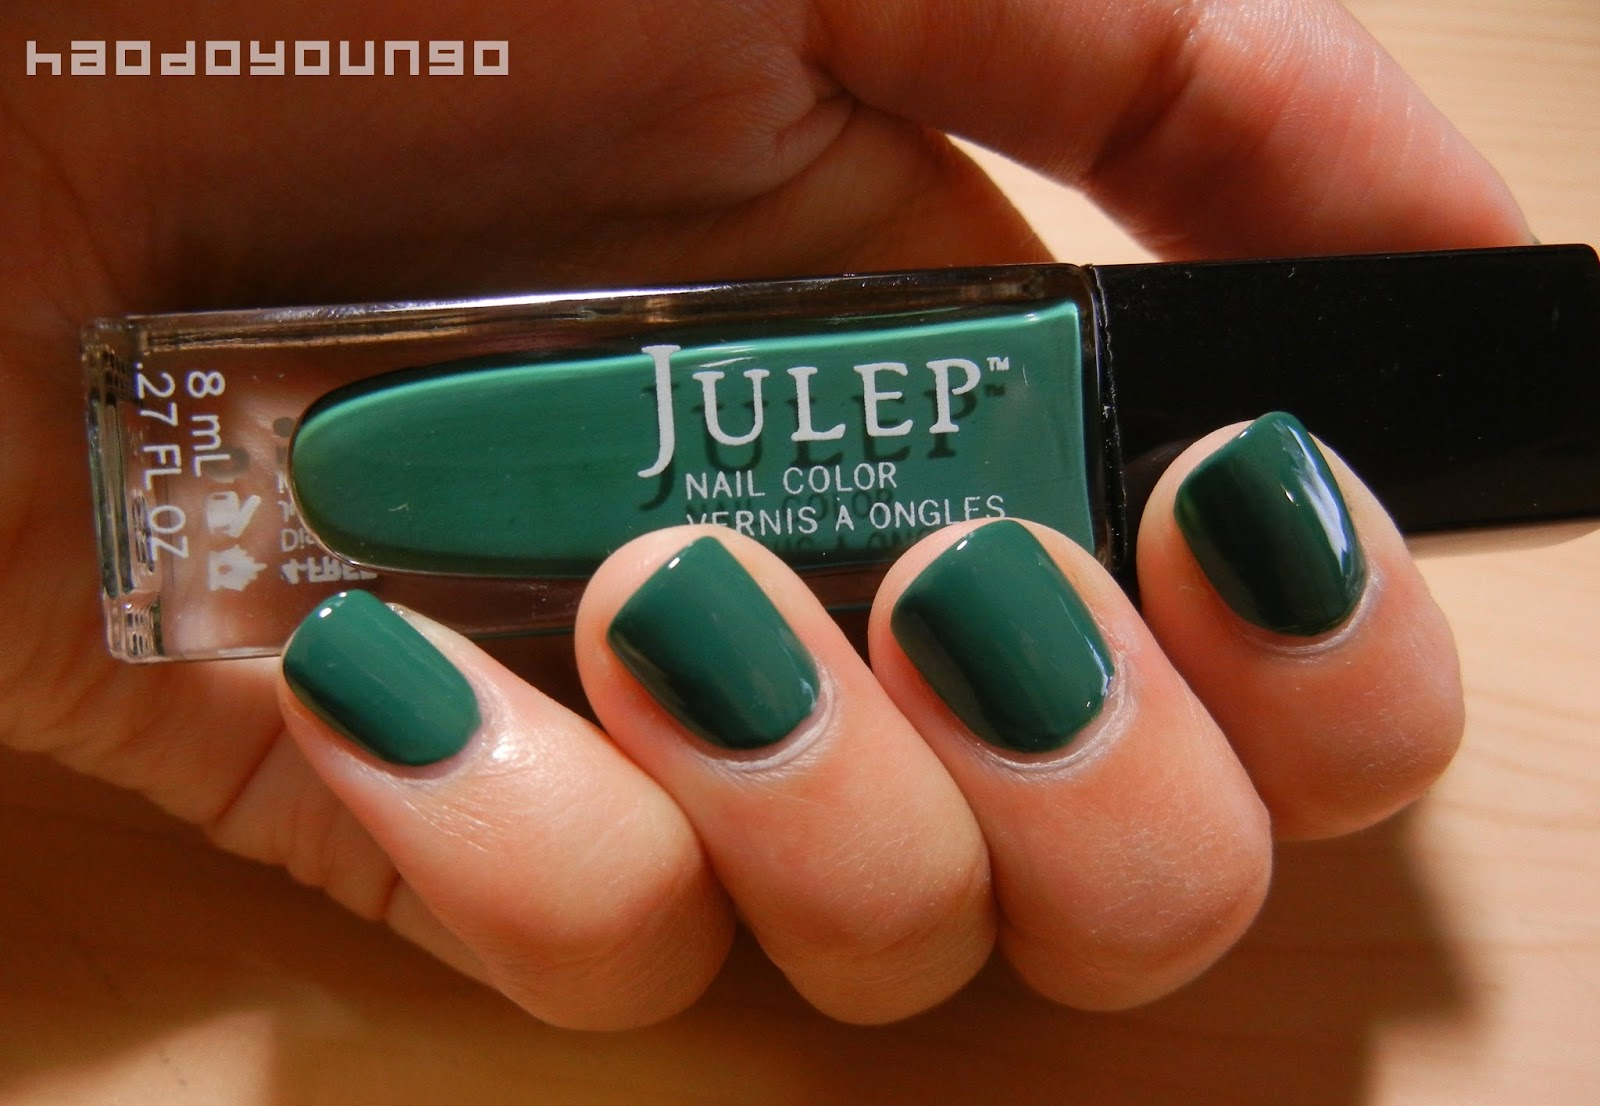 Review & Swatches: Julep Nail Polish in Hoch | haodoyoungo